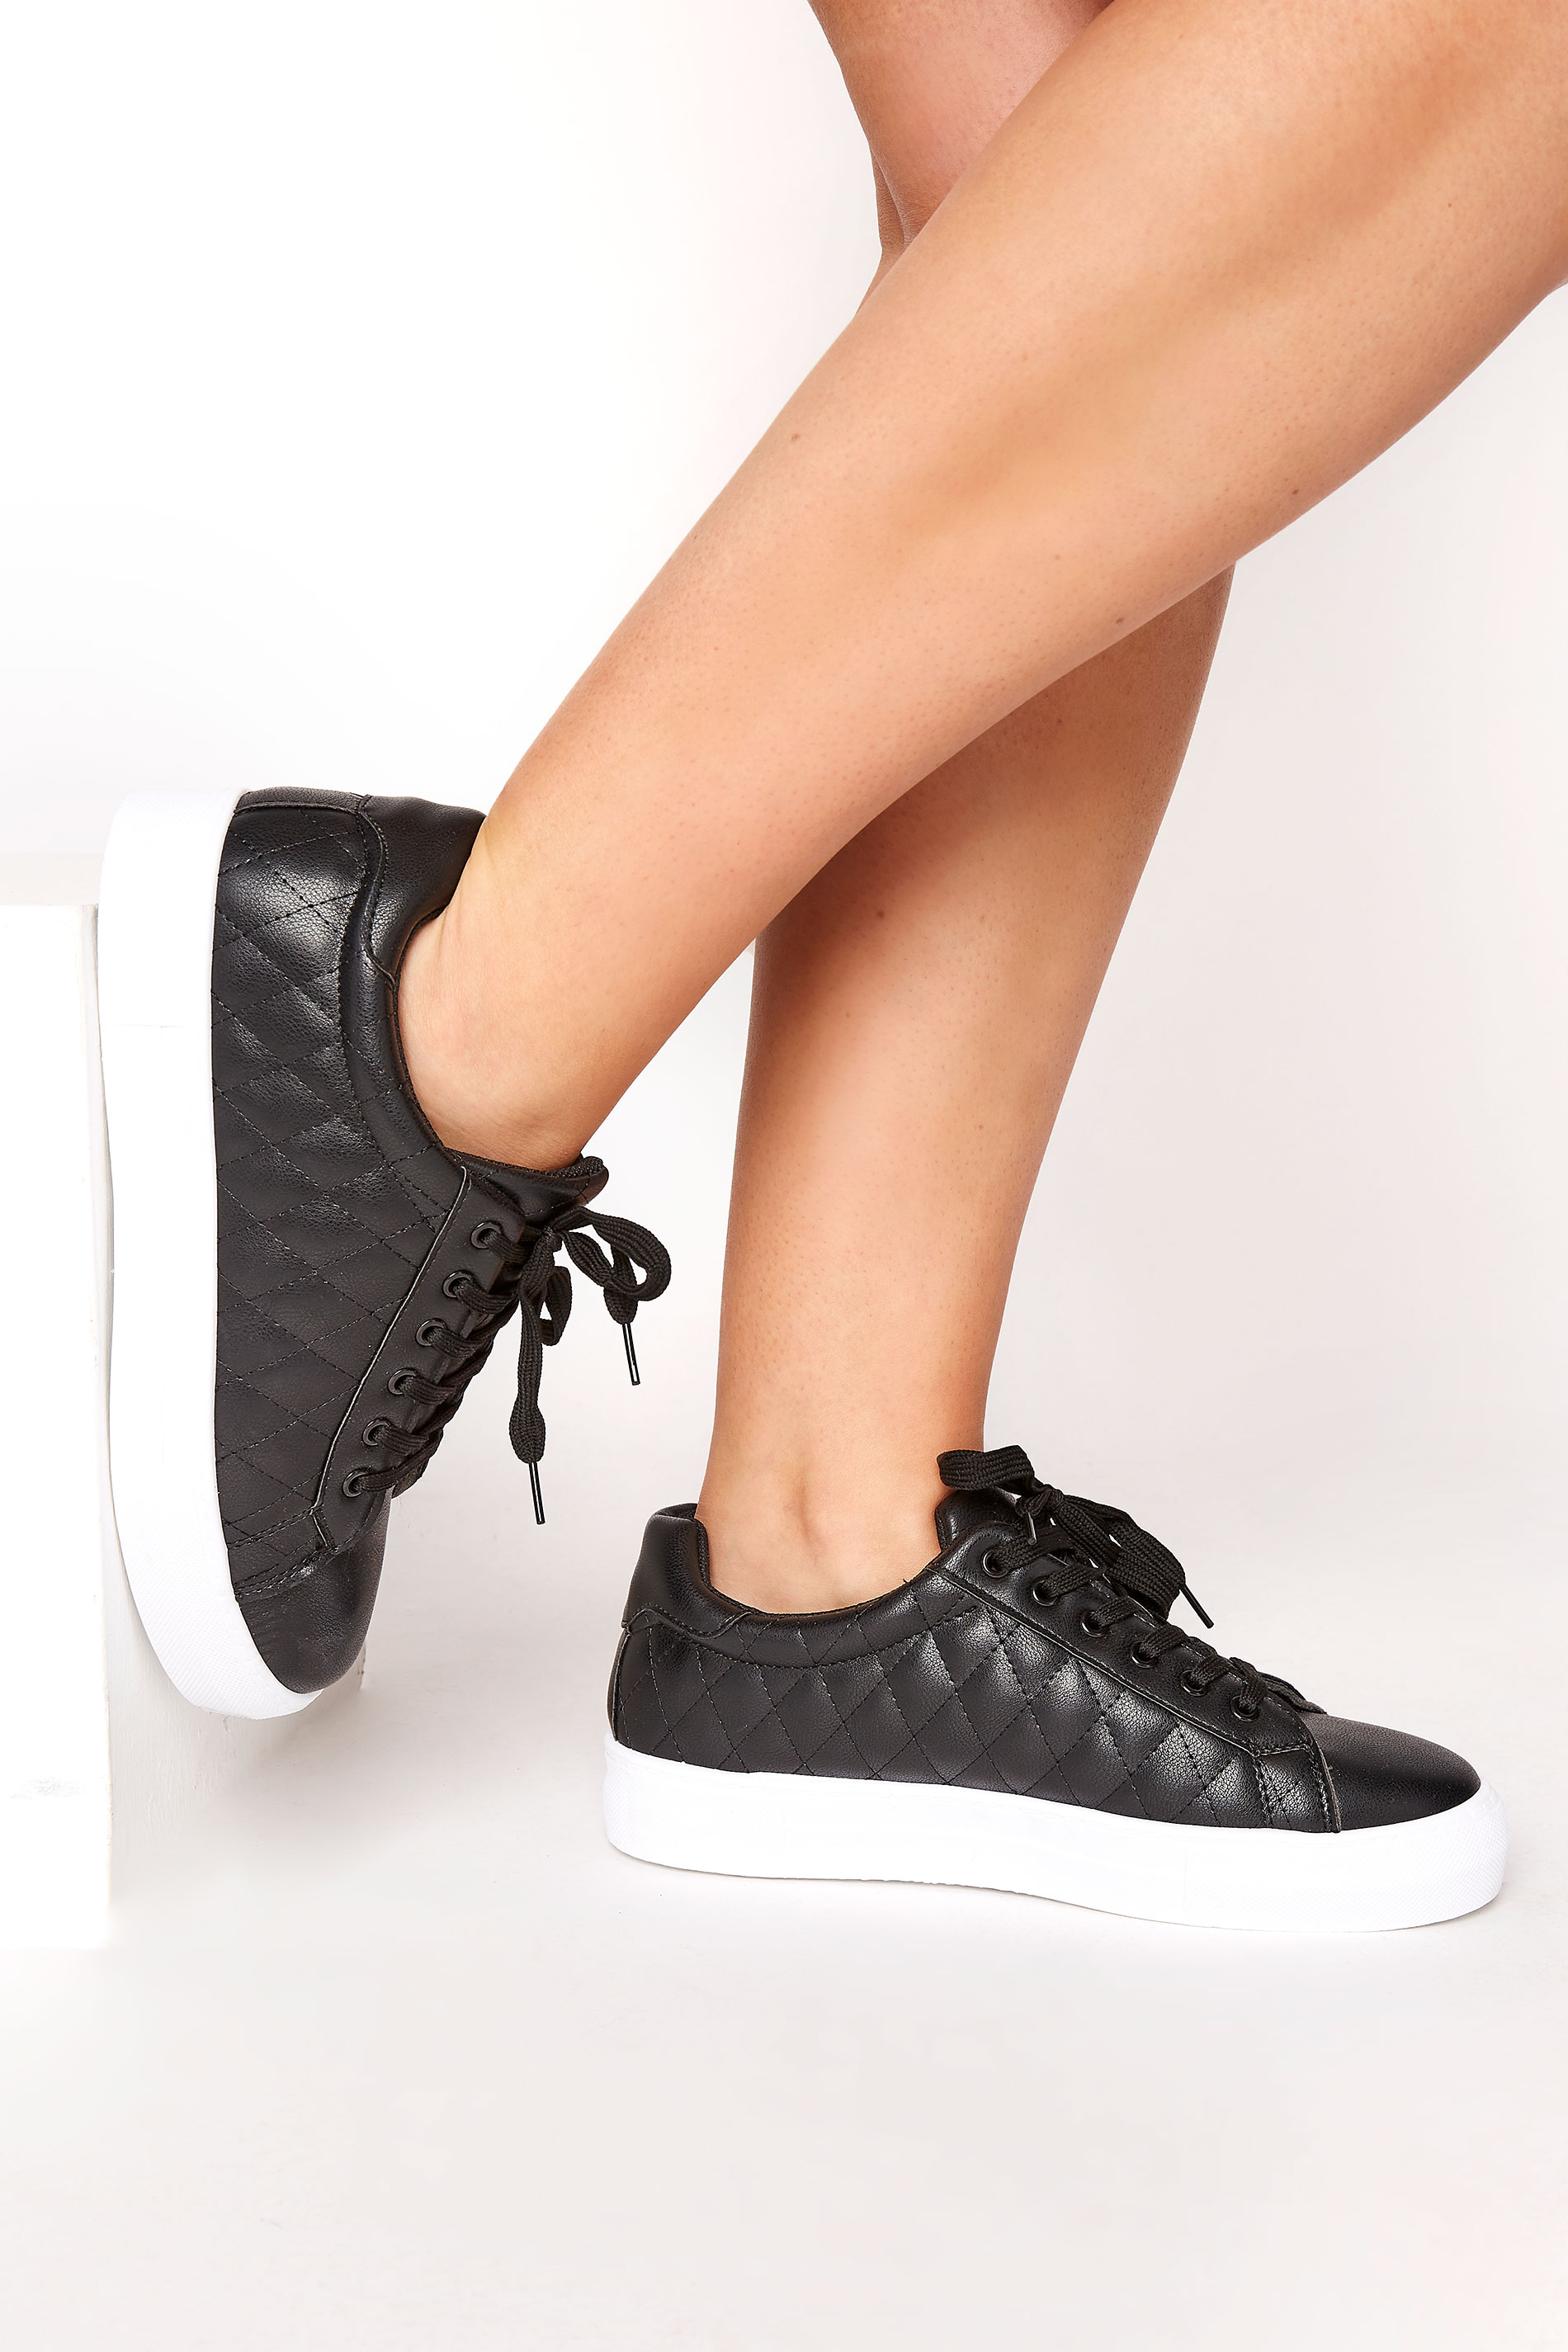 LIMITED COLLECTION Black Quilted Trainers In Wide Fit